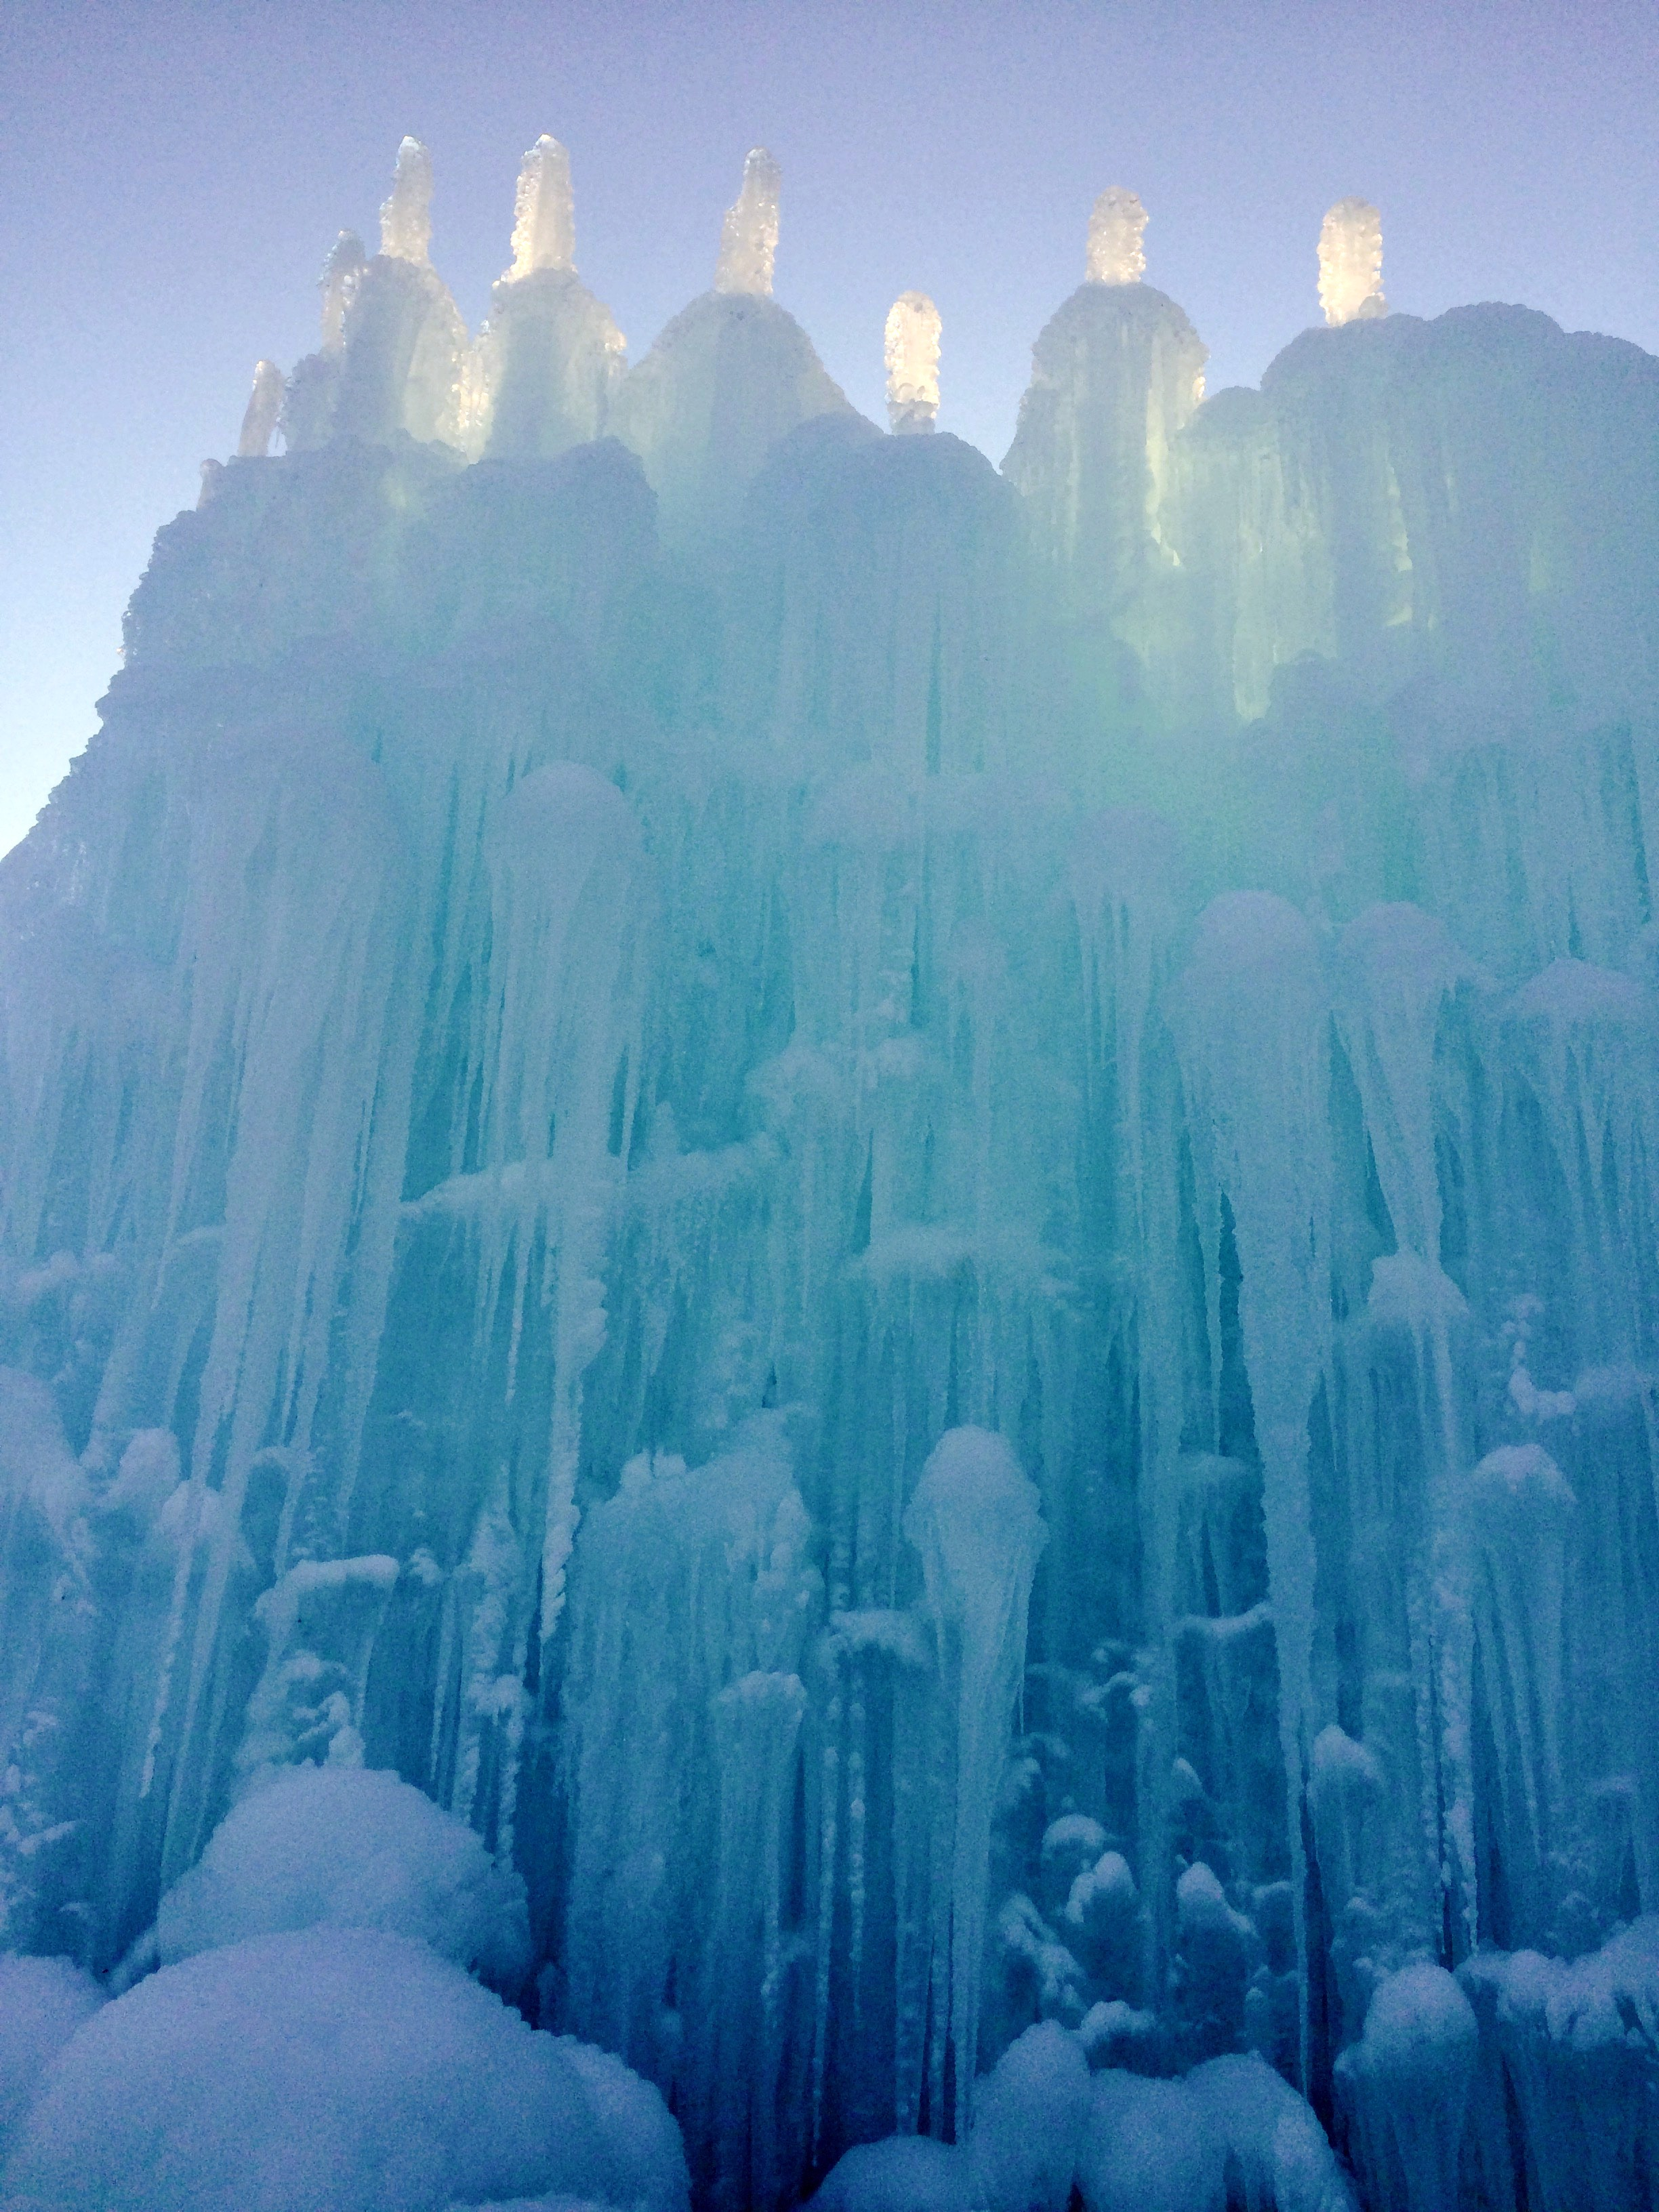 Explore Dazzling Depths At The Frozen Esq Ice Castles In